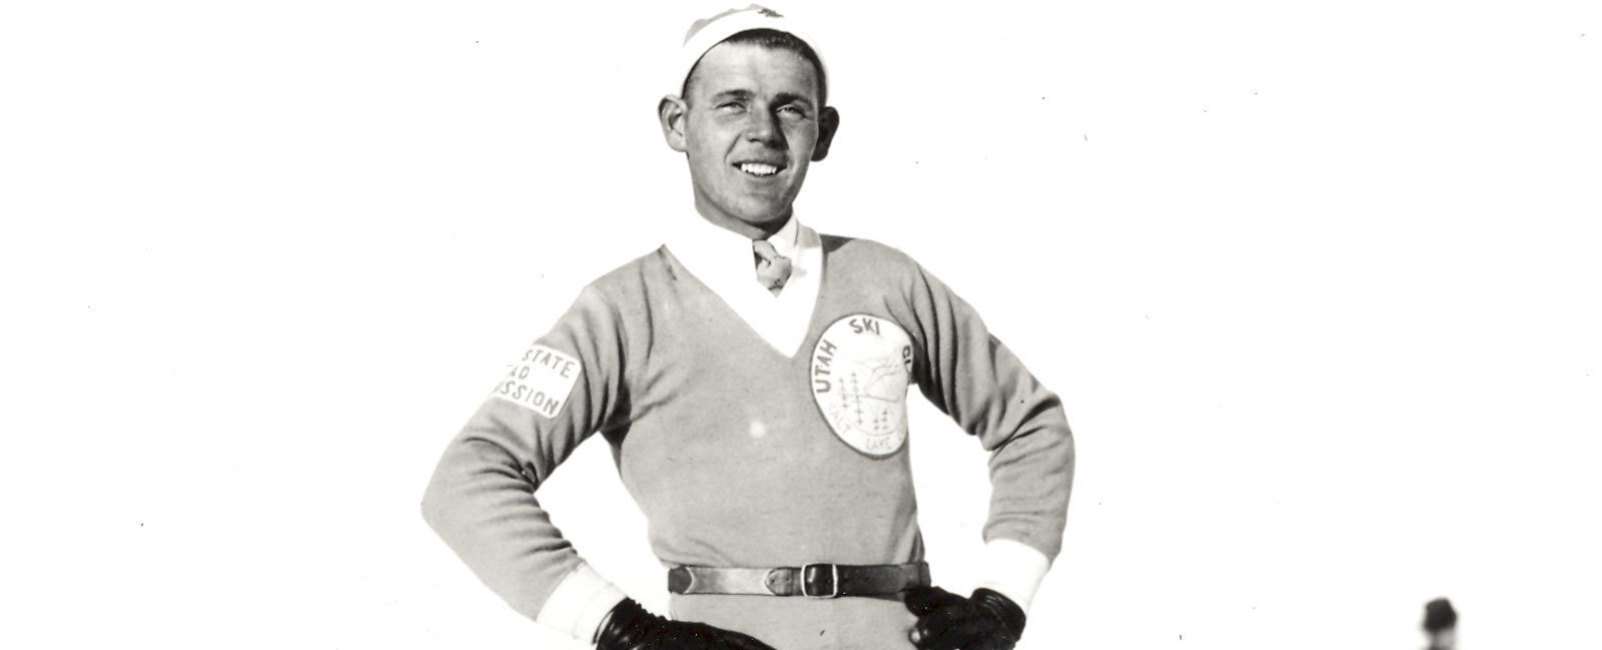 Alf Engen, Wheaties and the 1936 Winter Olympics